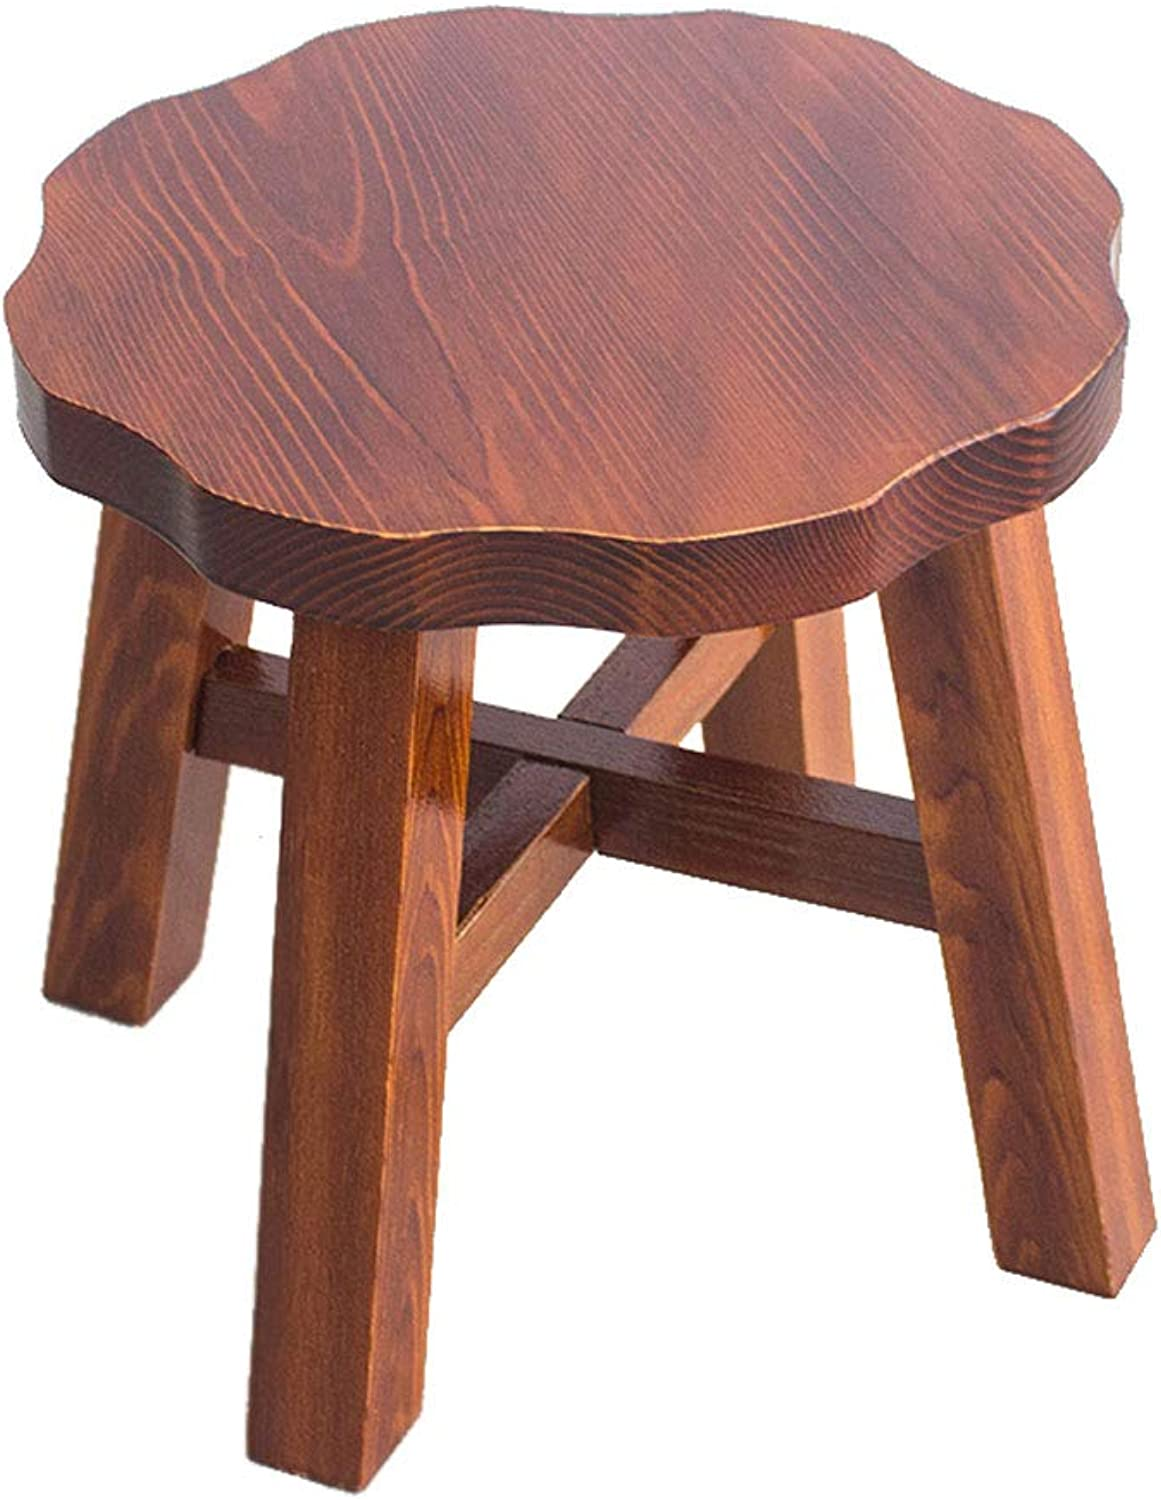 Living Room Creative Solid Wood Stool Adult Bench Fashion Round Stool (color   B)